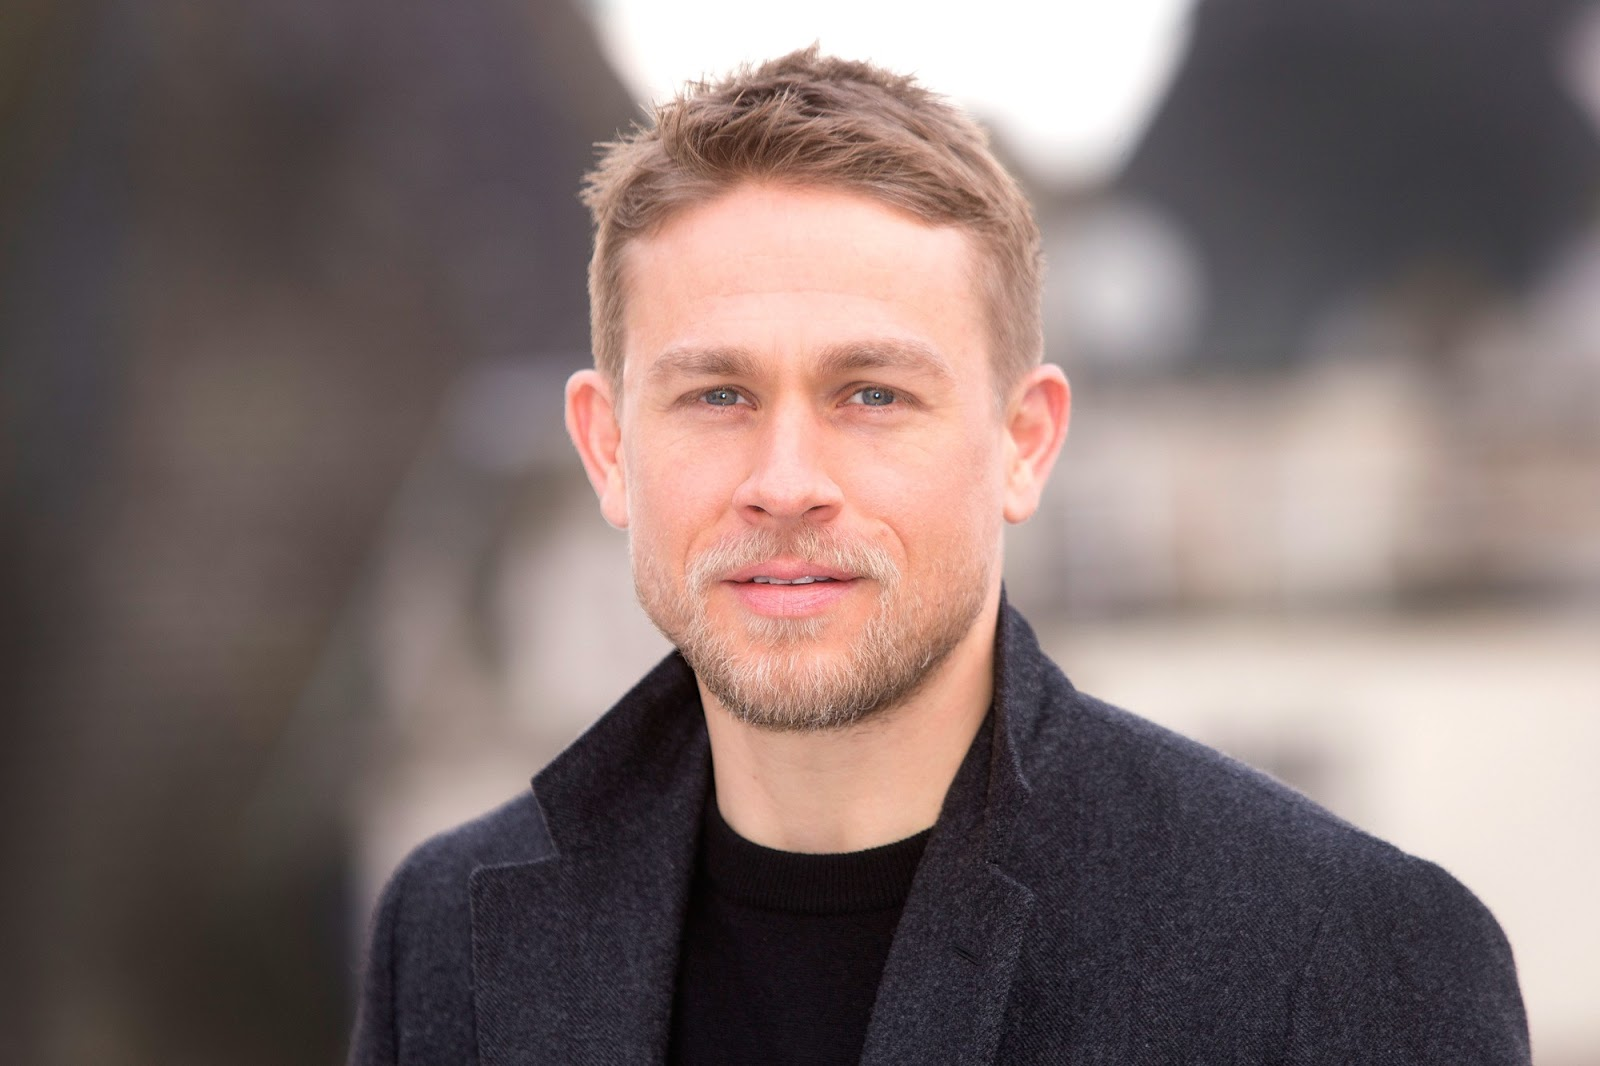 photo Charlie Hunnam (born 1980)